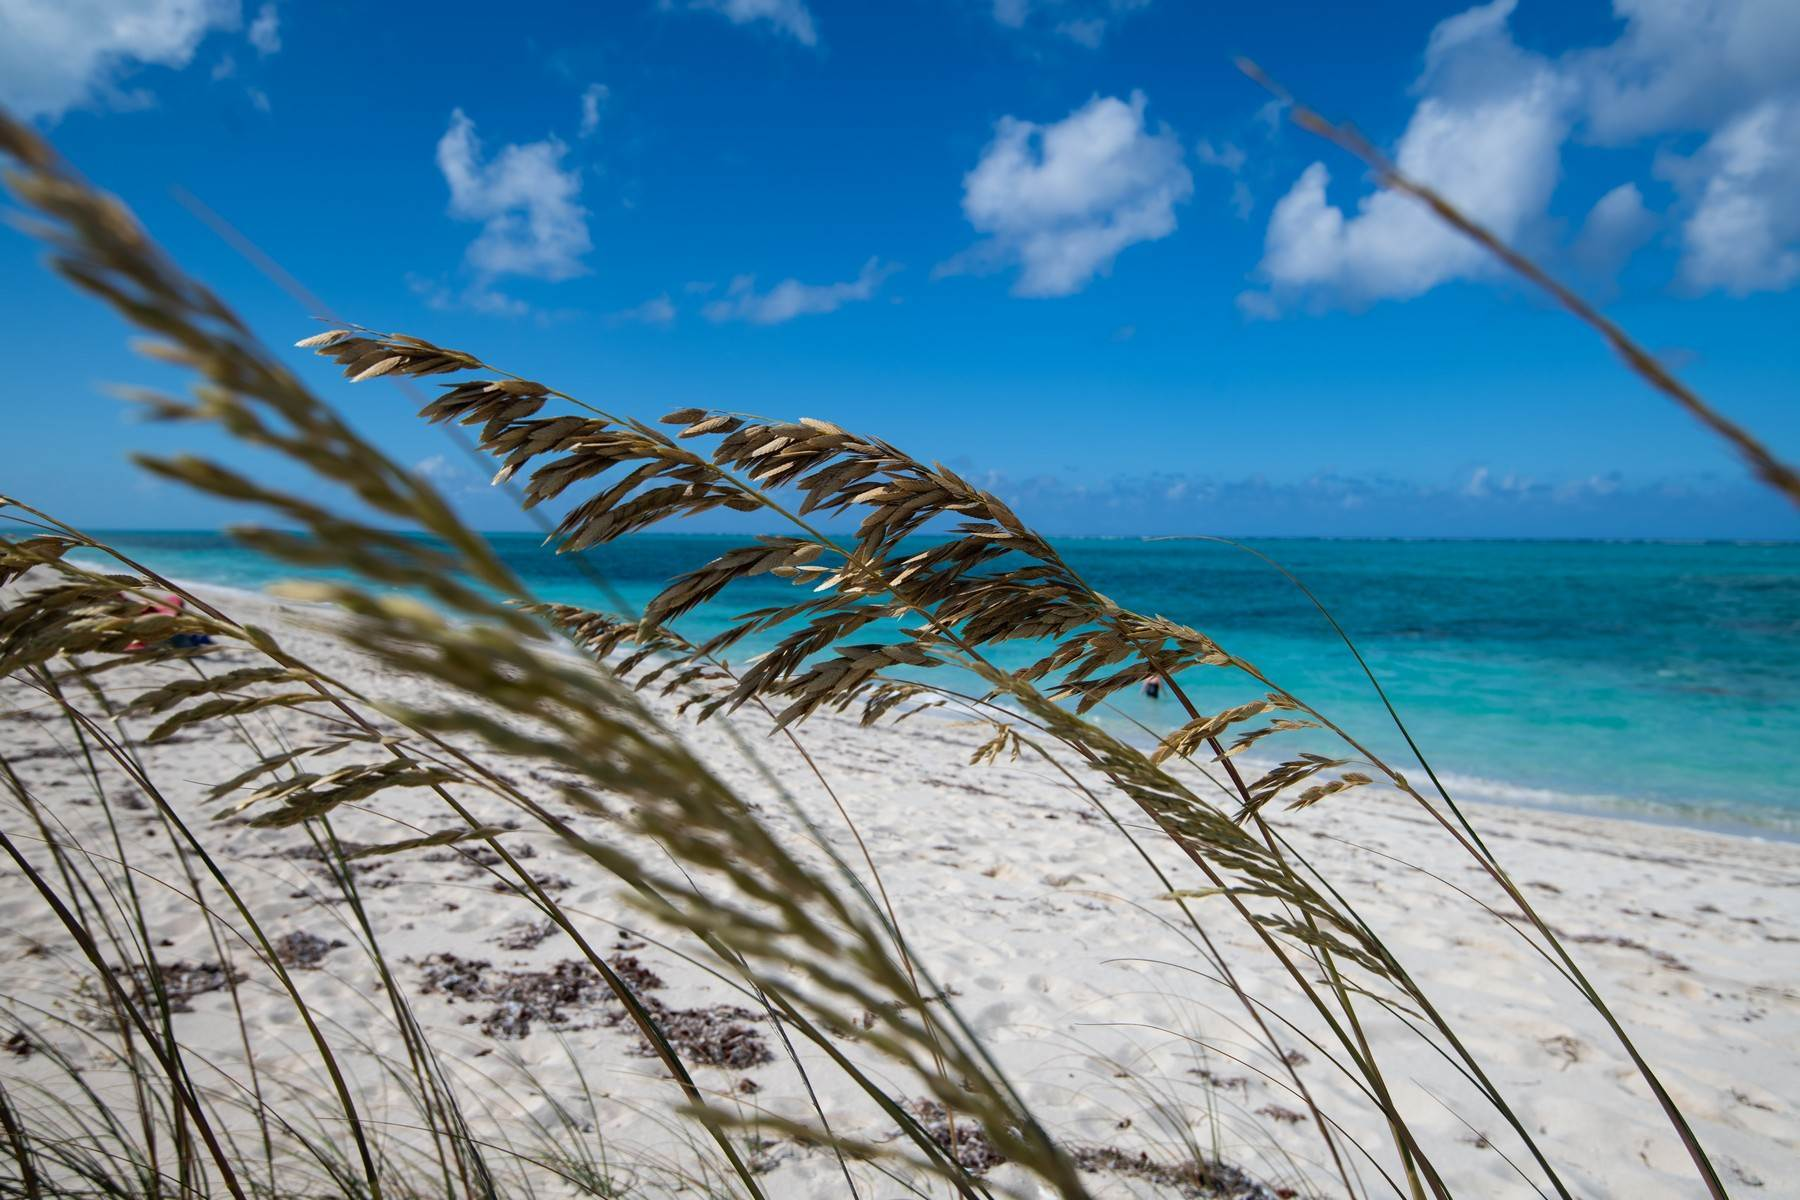 18. Land for Sale at Donkey Lane Estate land Richmond Hill, Providenciales Turks And Caicos Islands